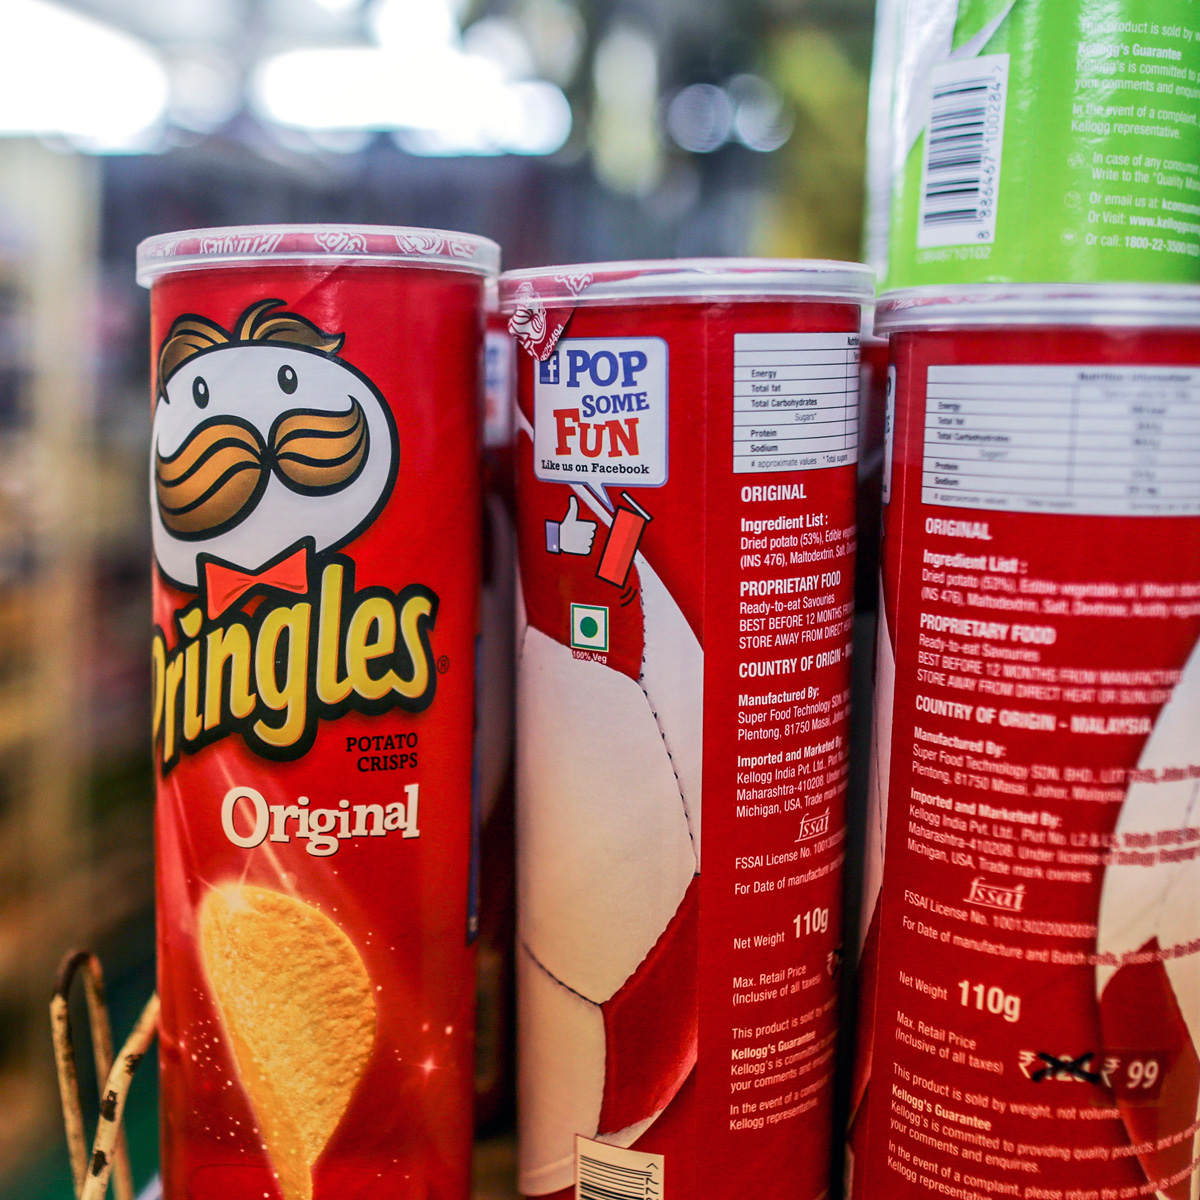 The Man Buried in a Pringles Can and the Other Strange Pringles Mysteries